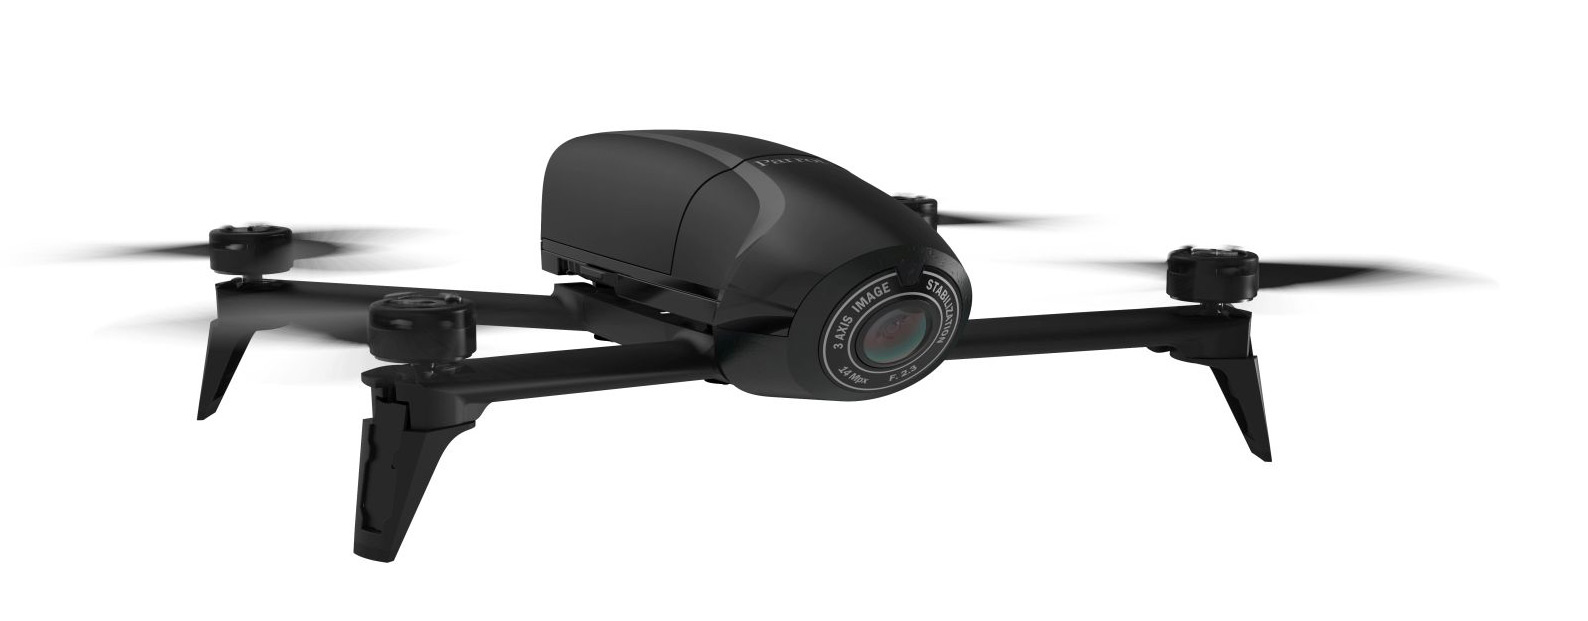 Parrot Bebop 2 Power Quadcopter mit 30 Minuten Flugzeit